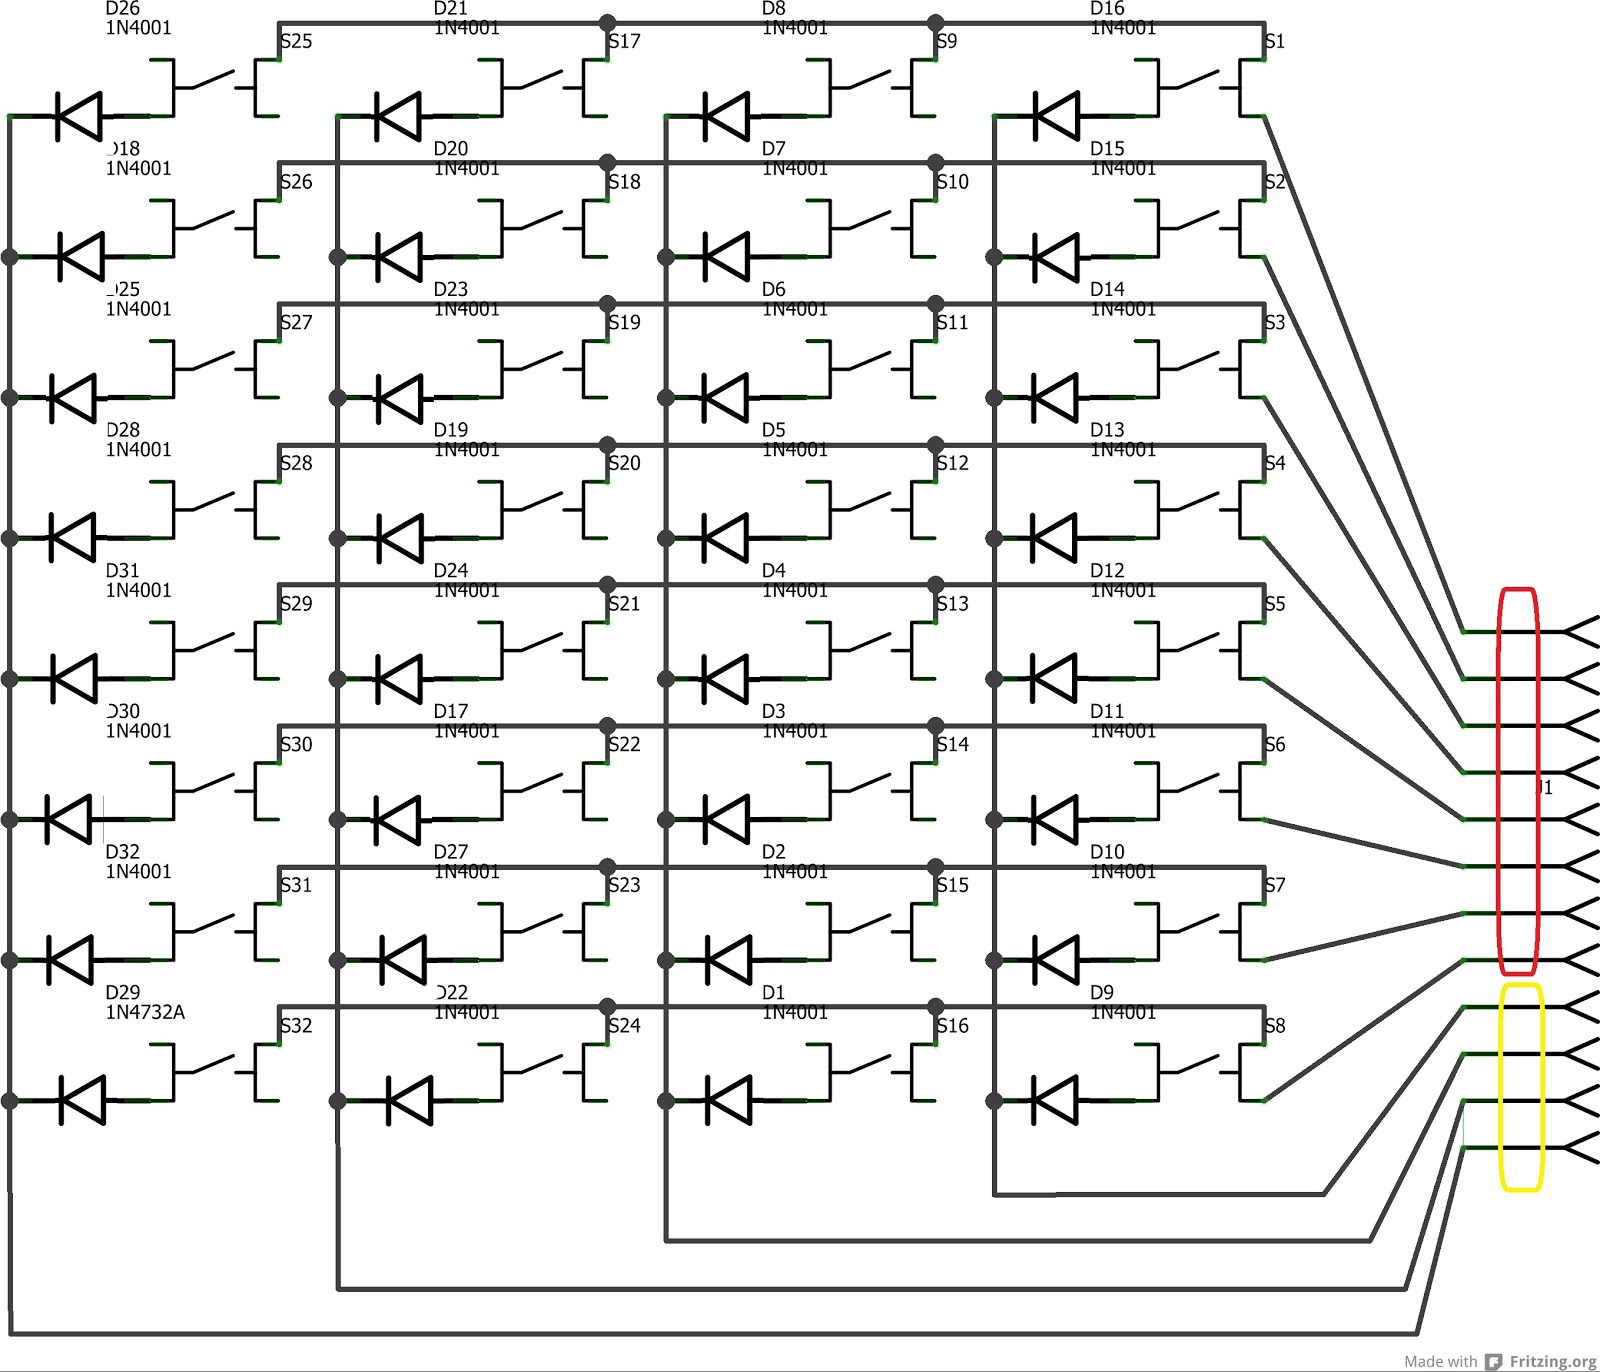 medium resolution of keys pcb schematic columns red and rows yellow